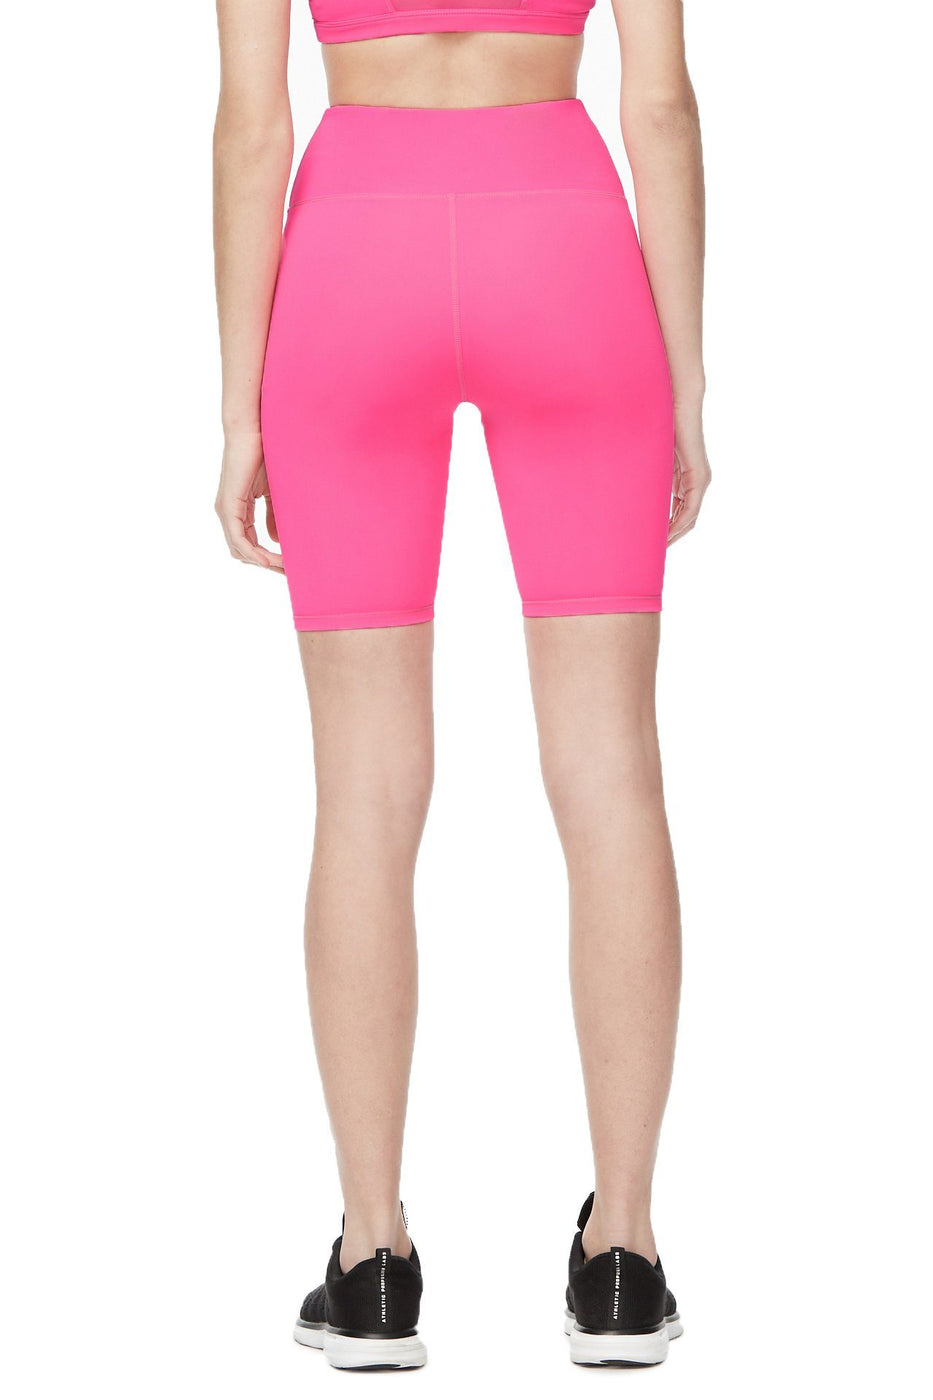 THE BIKE SHORT | NEON PINK001